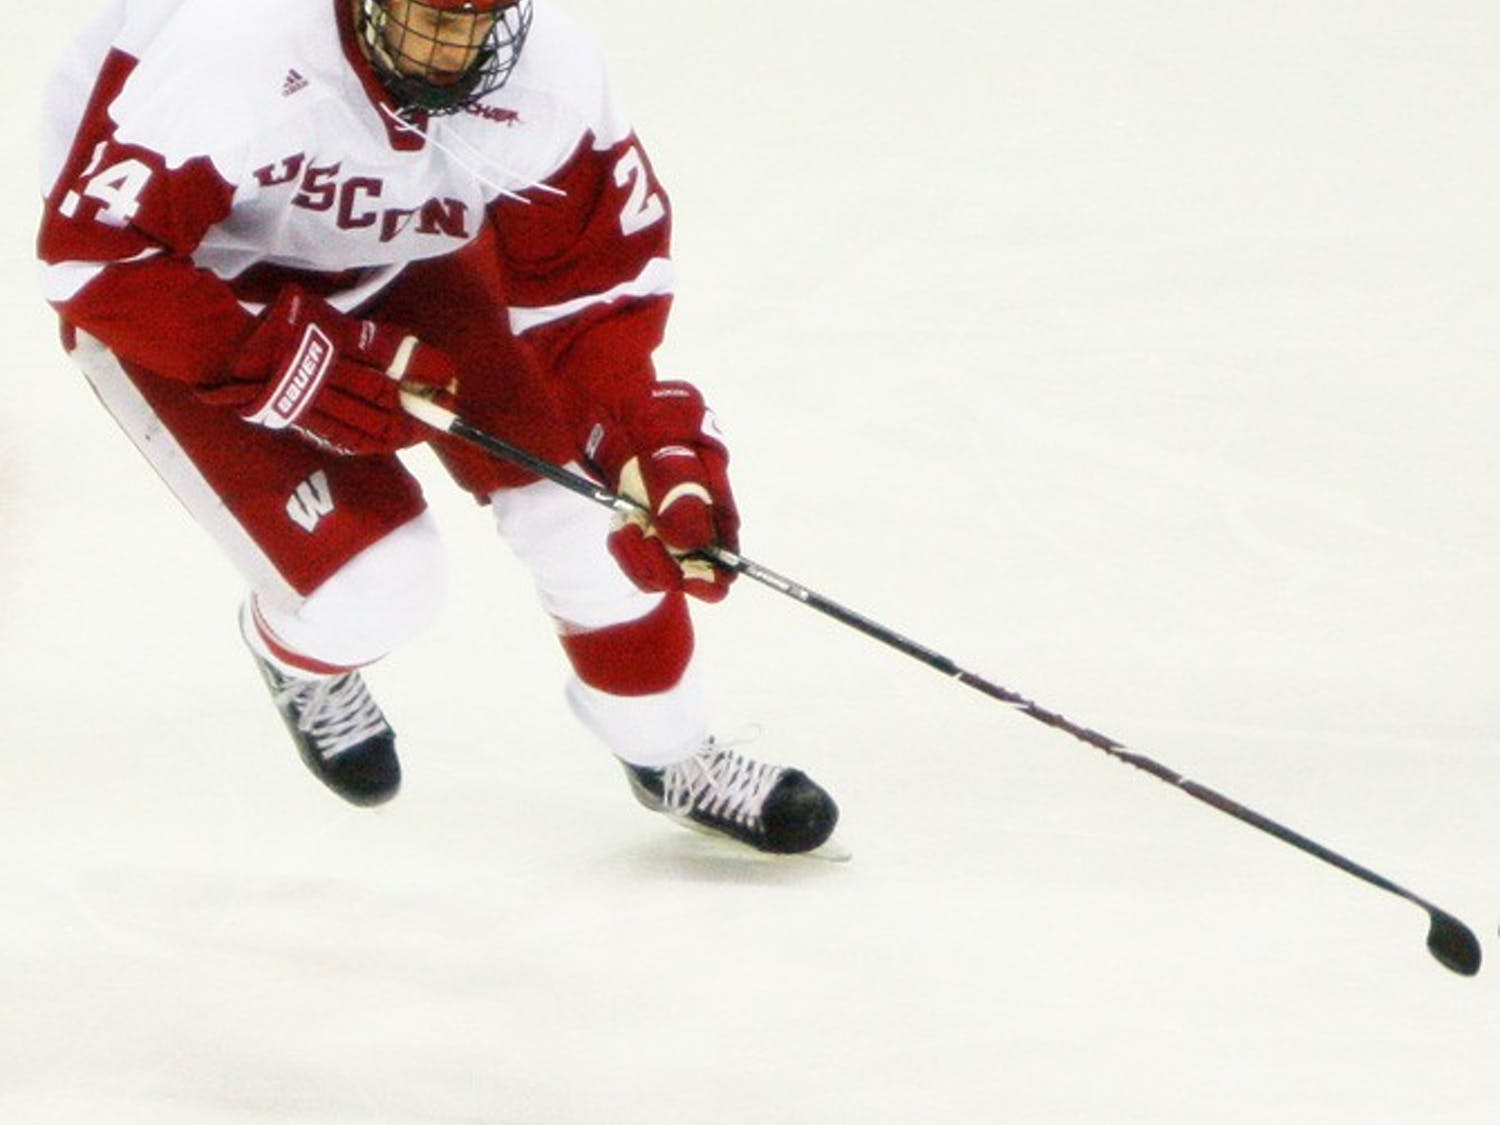 Wisconsin wins one, drops one at St. Cloud State in weekend series